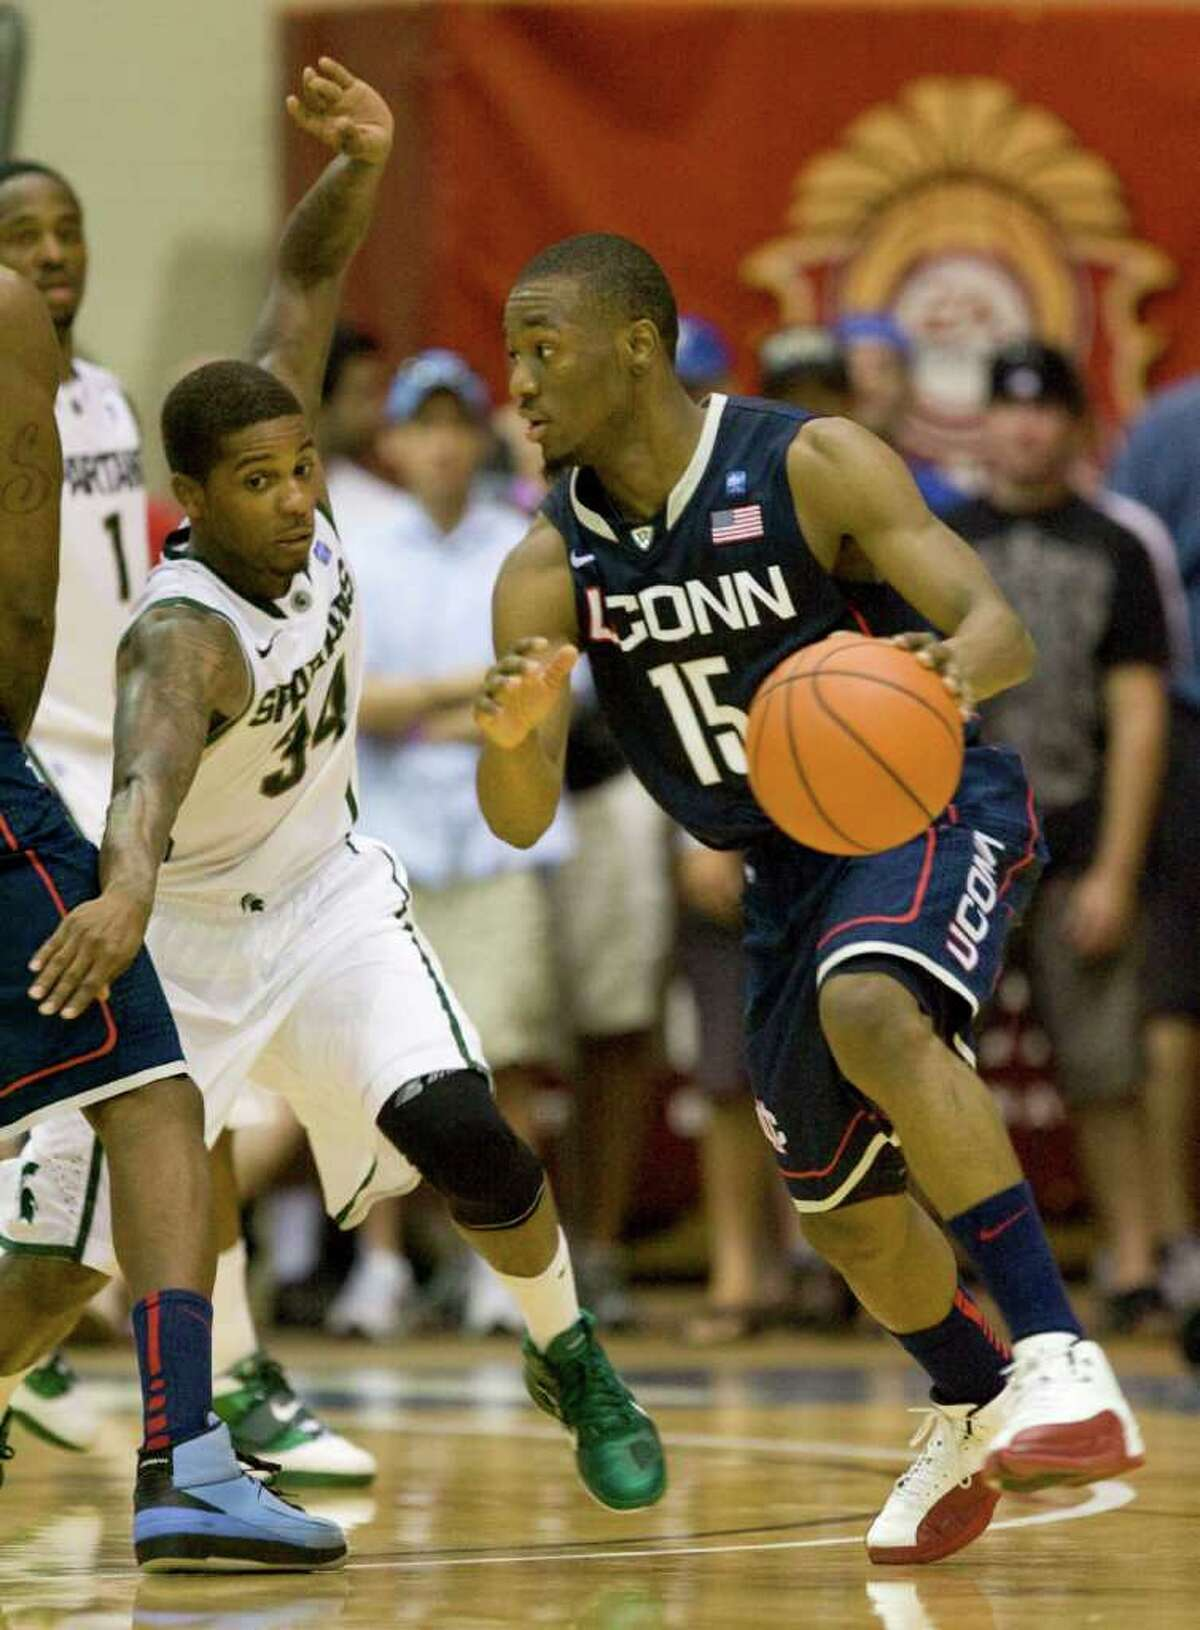 Michigan State guard Korie Lucious (34) attempts to defend Connecticut guard Kemba Walker (15) in the second half of an NCAA college basketball game at the Maui Invitational in Lahaina, Hawaii Tuesday, Nov. 23, 2010. Connecticut defeated Michigan State 70-67 to advance to the championship game. (AP Photo/Eugene Tanner)